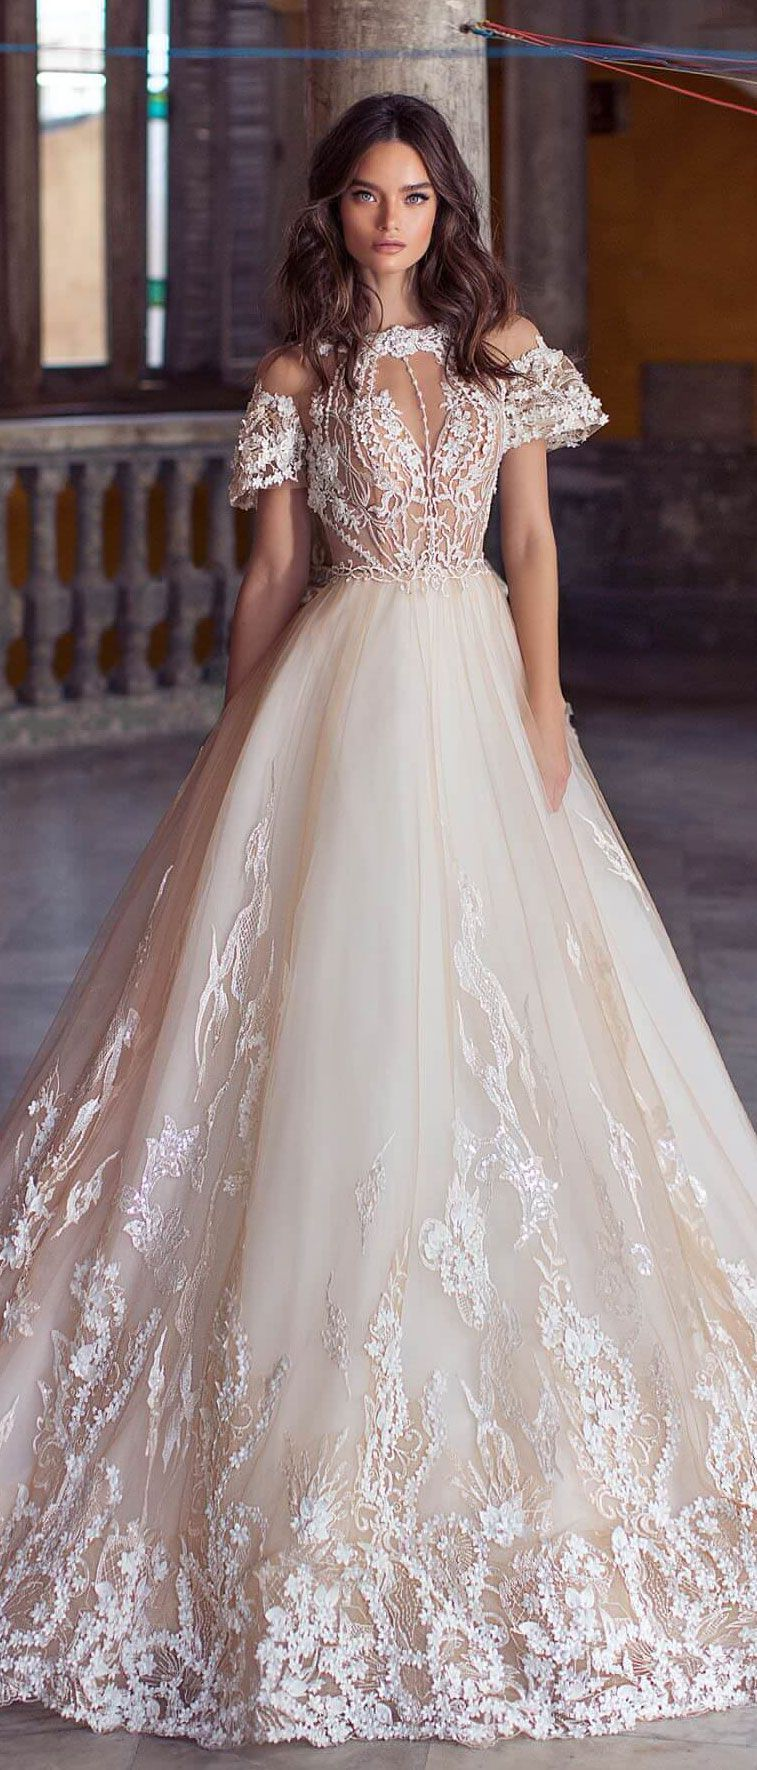 Tulle skirt wedding dress  Tulle skirt adorned with threedimensional floral appliqués and